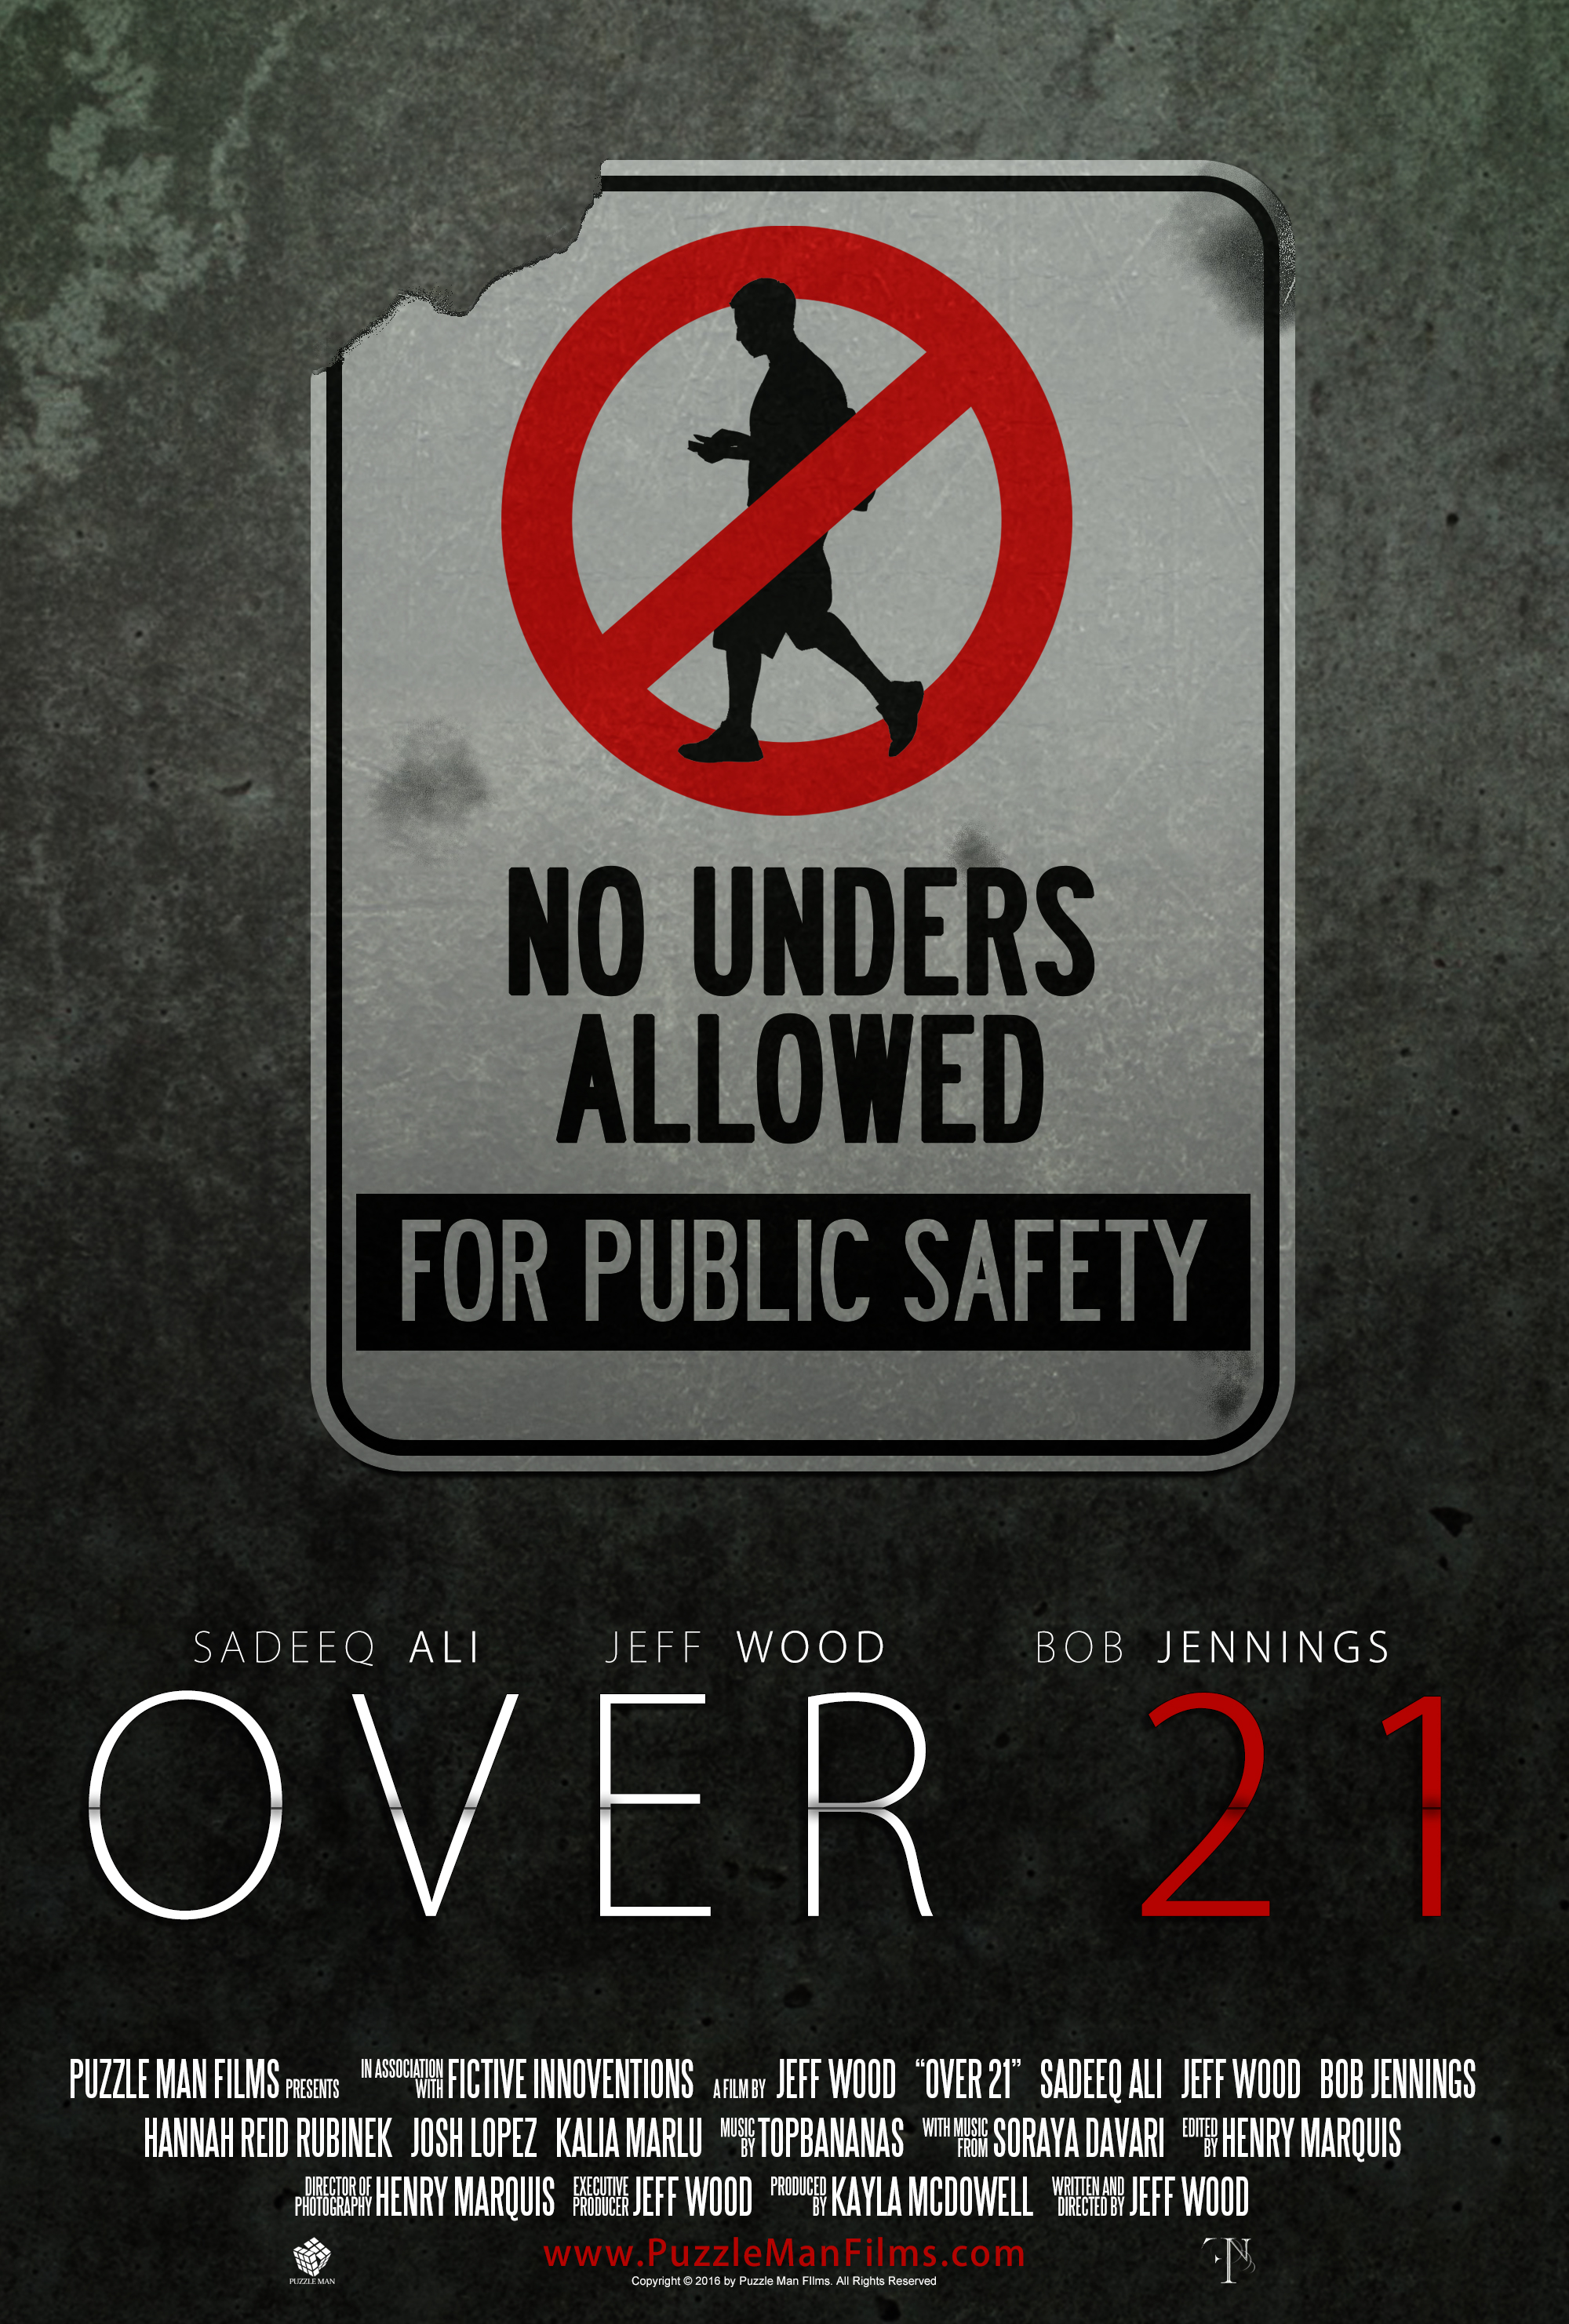 Over 21